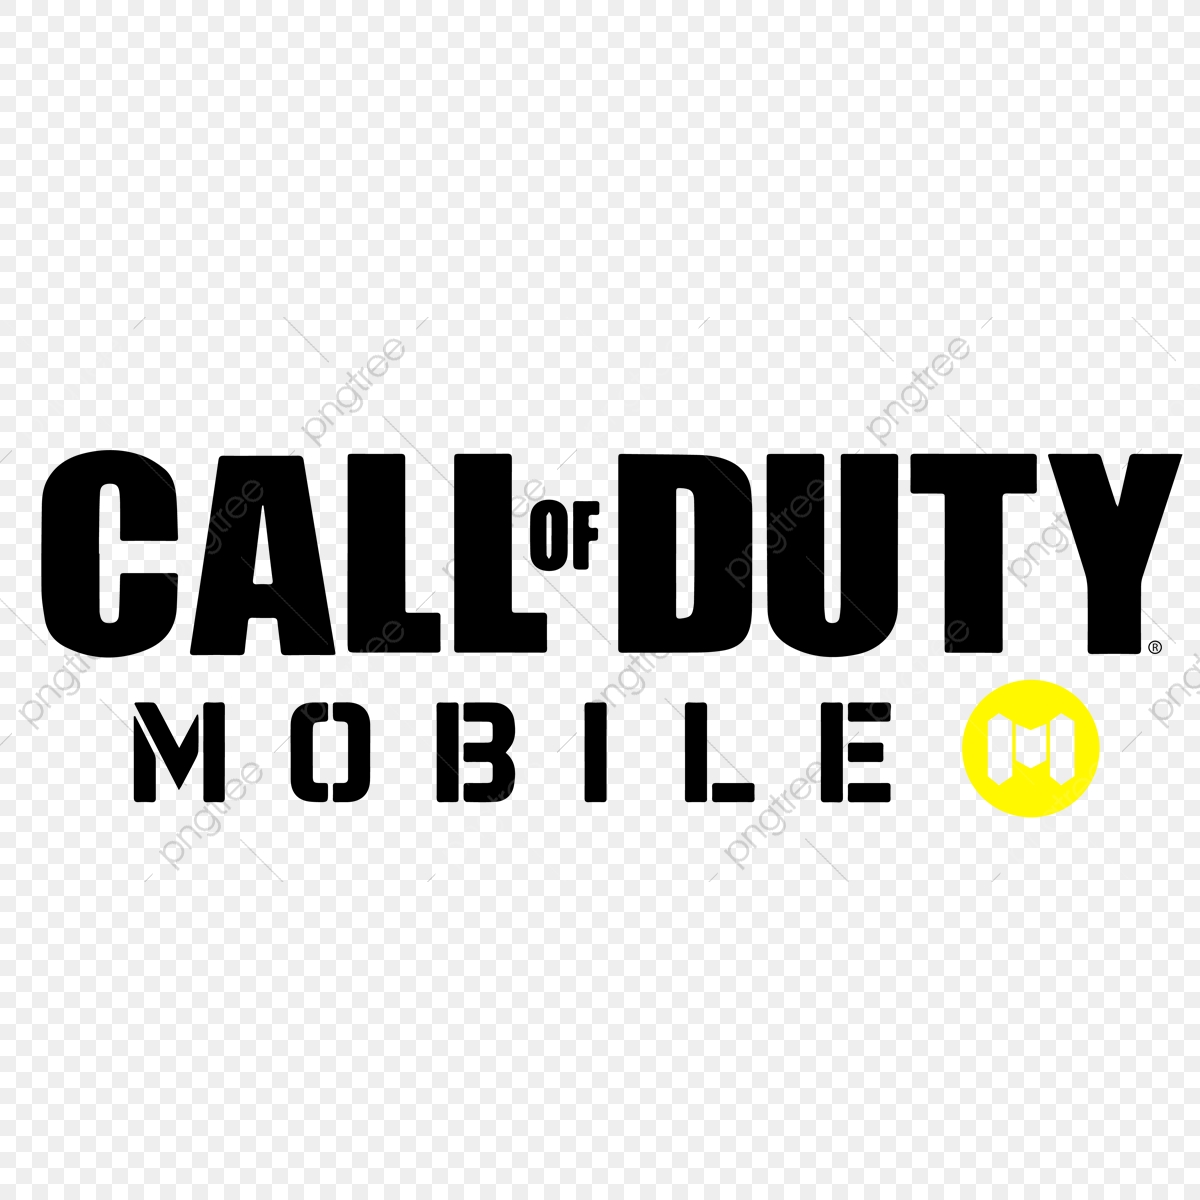 Call Of Duty Mobile, Cod Mobile, Cod PNG Transparent Clipart Image.